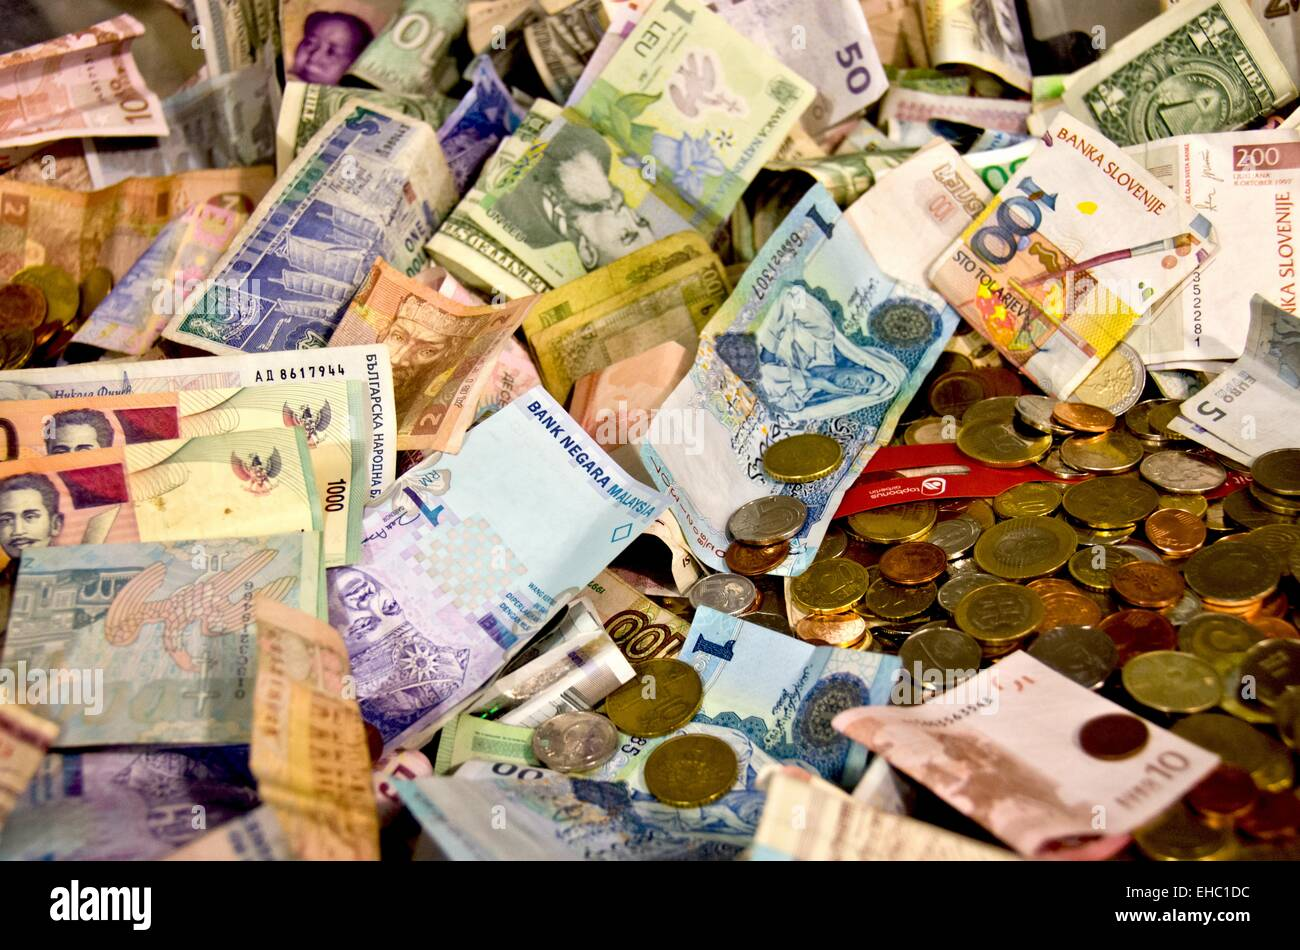 World different currencies coins and paper money. - Stock Image